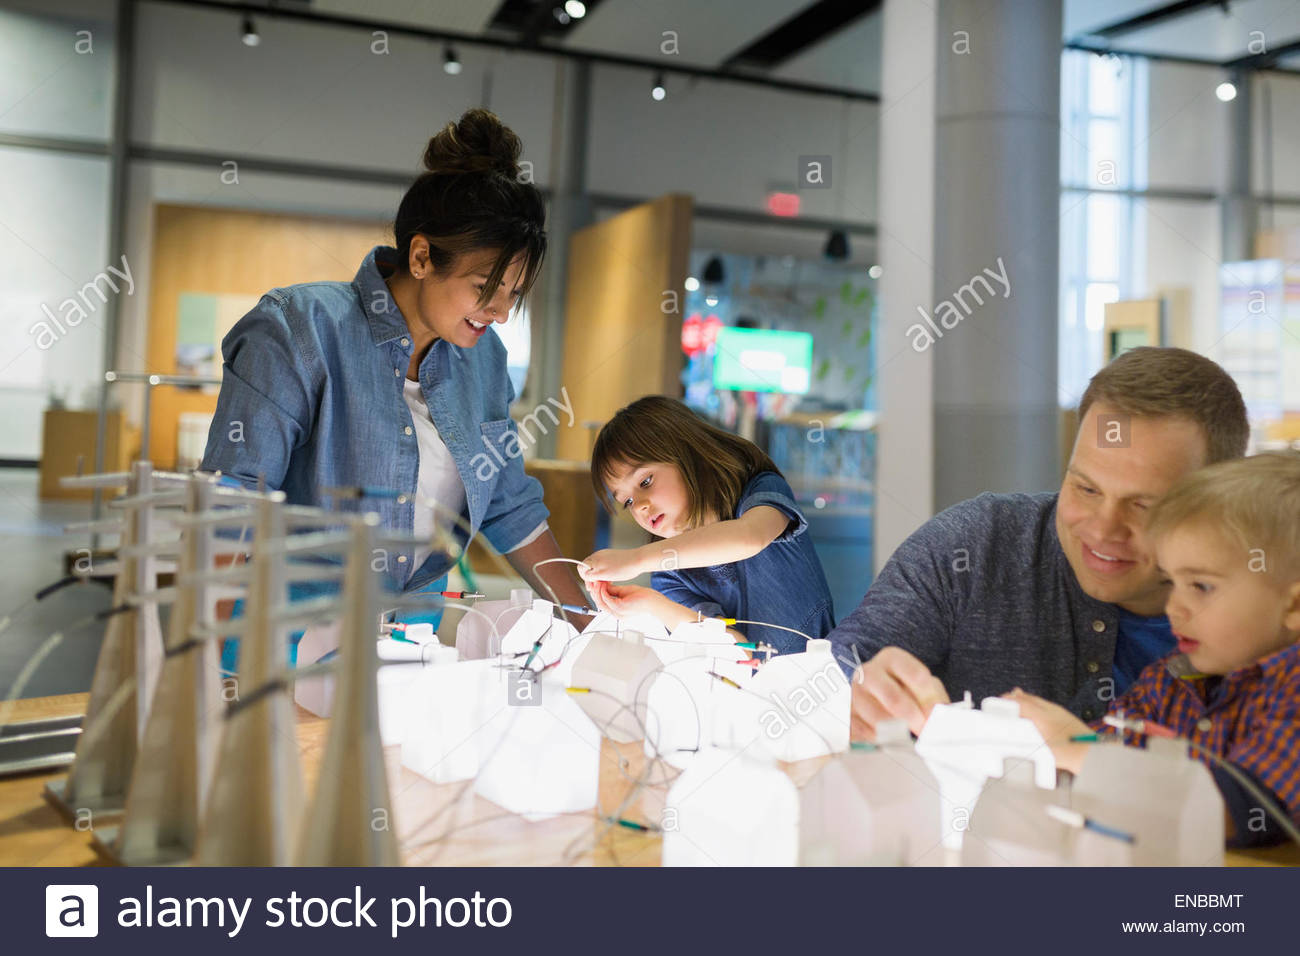 Family playing with electricity grid at science center - Stock Image